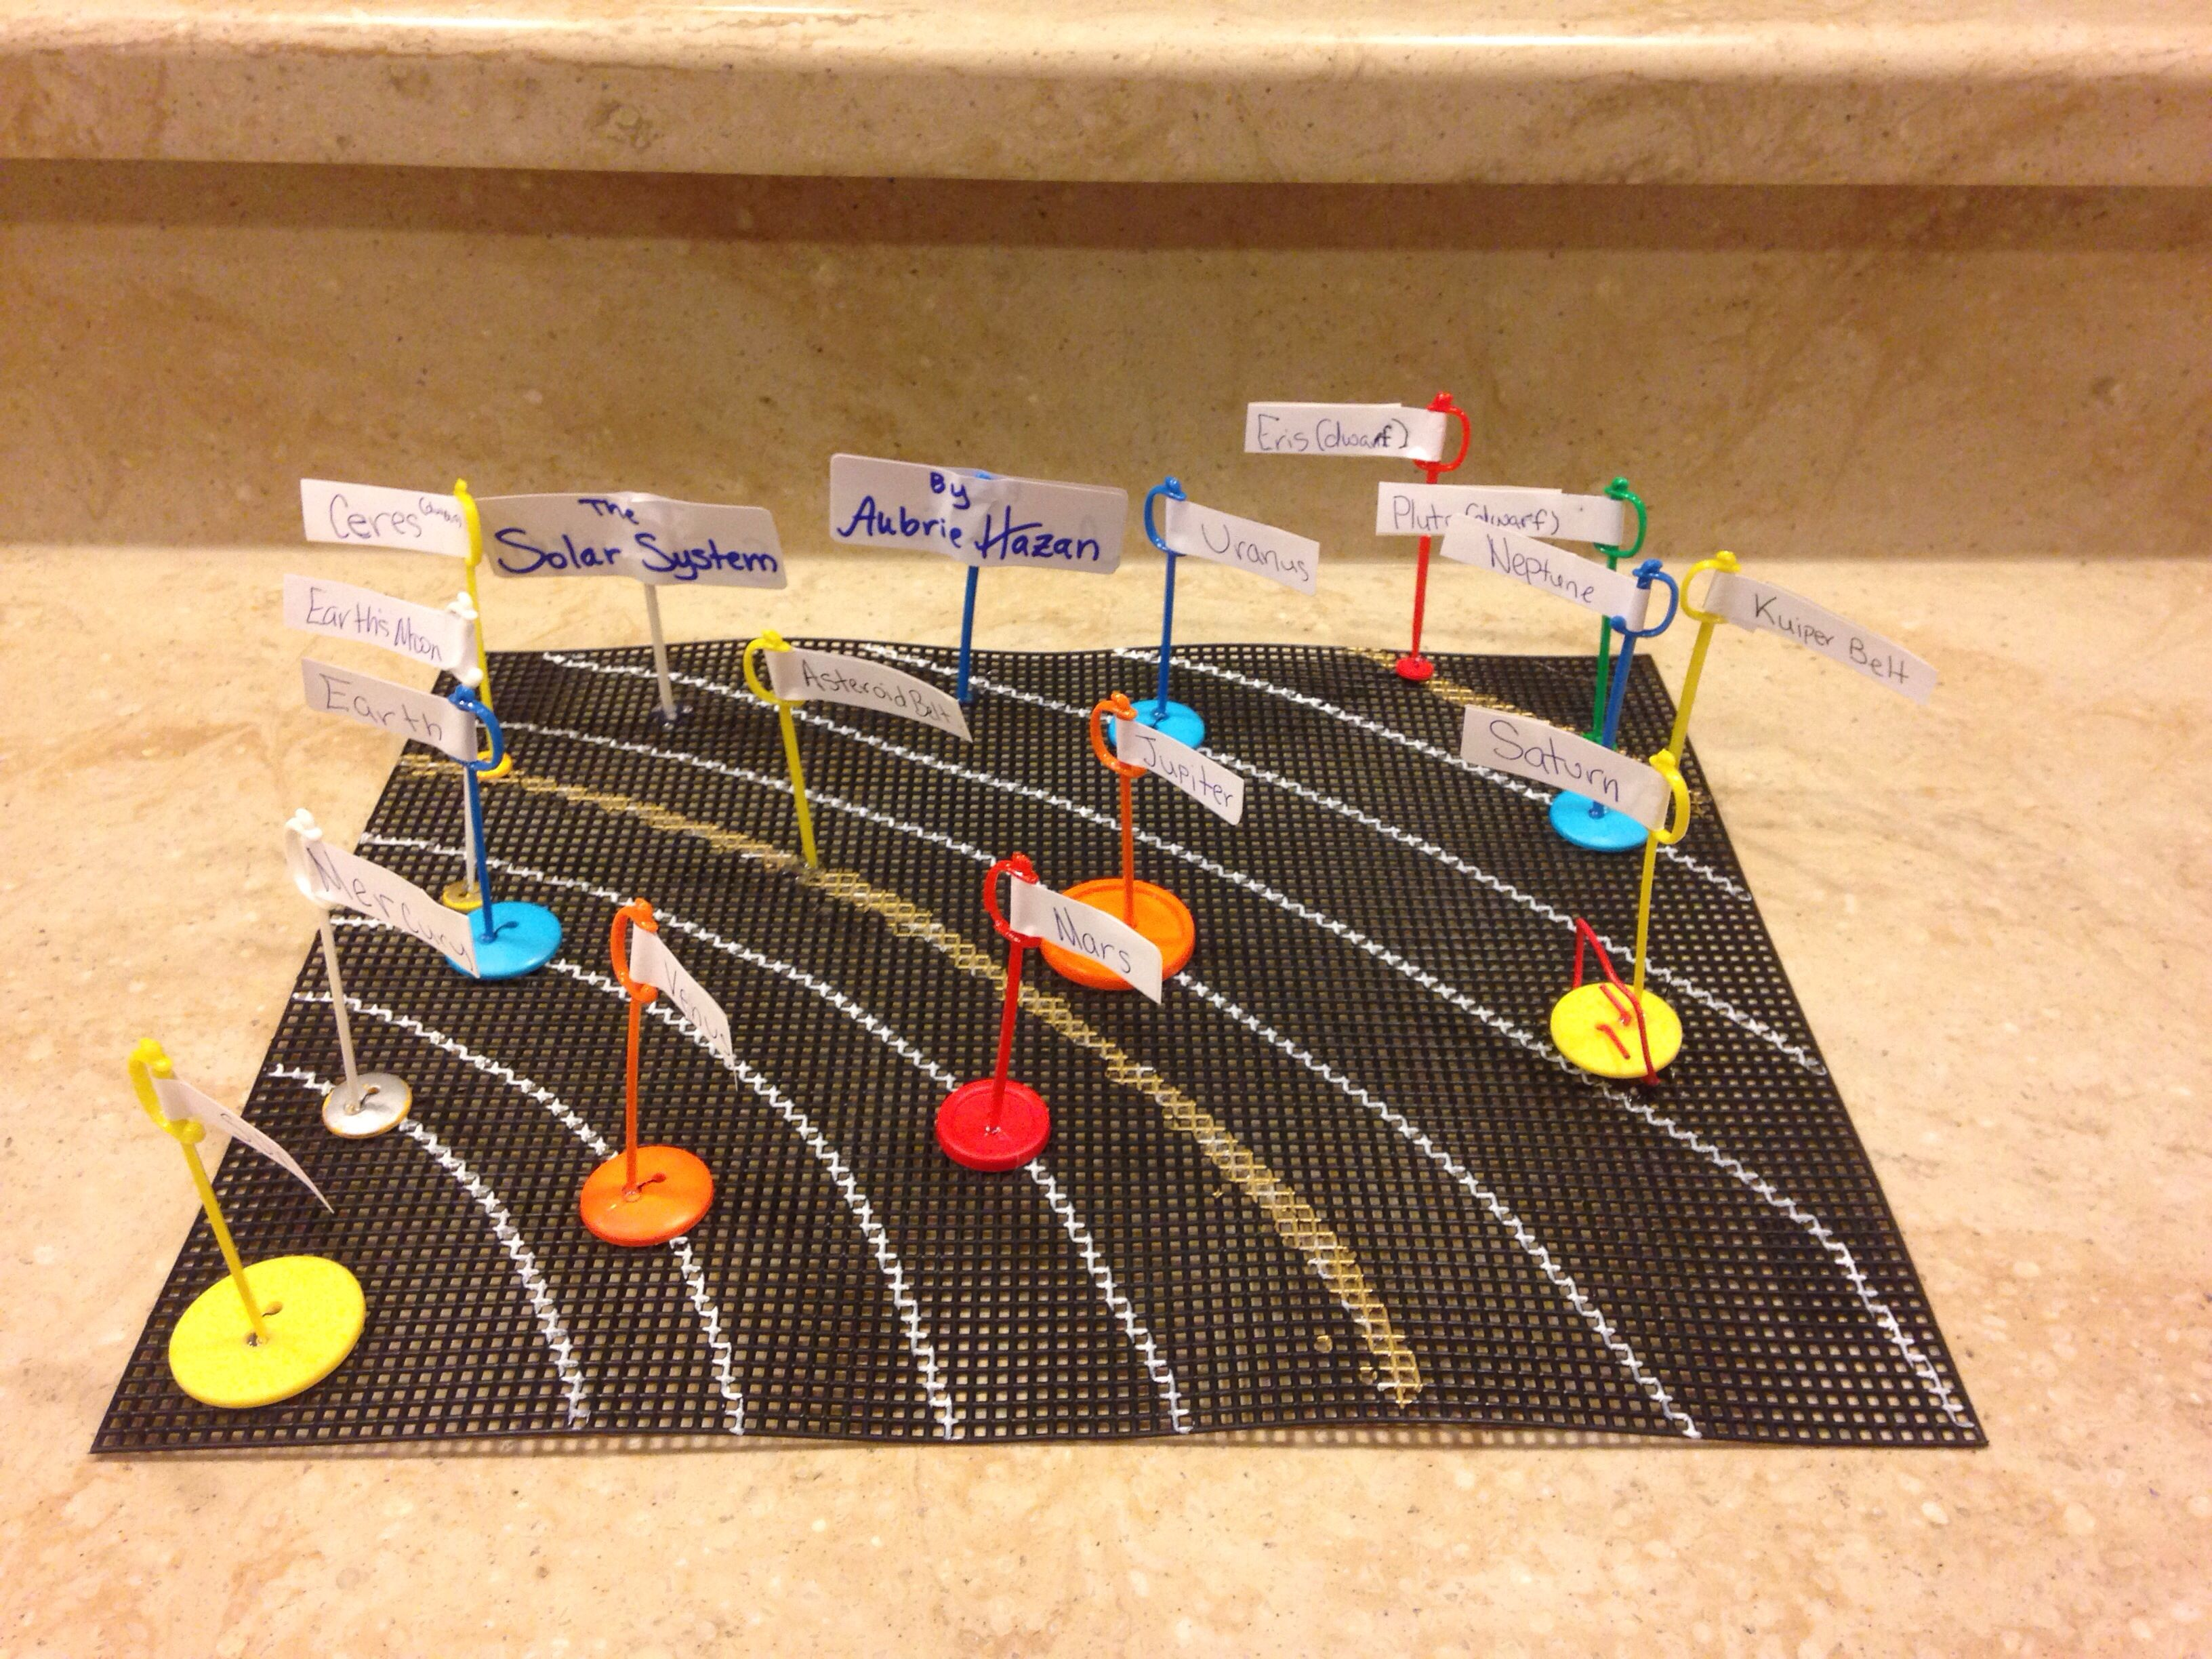 solar system diagram for school project made our of a plastic canvas buttons  [ 3264 x 2448 Pixel ]